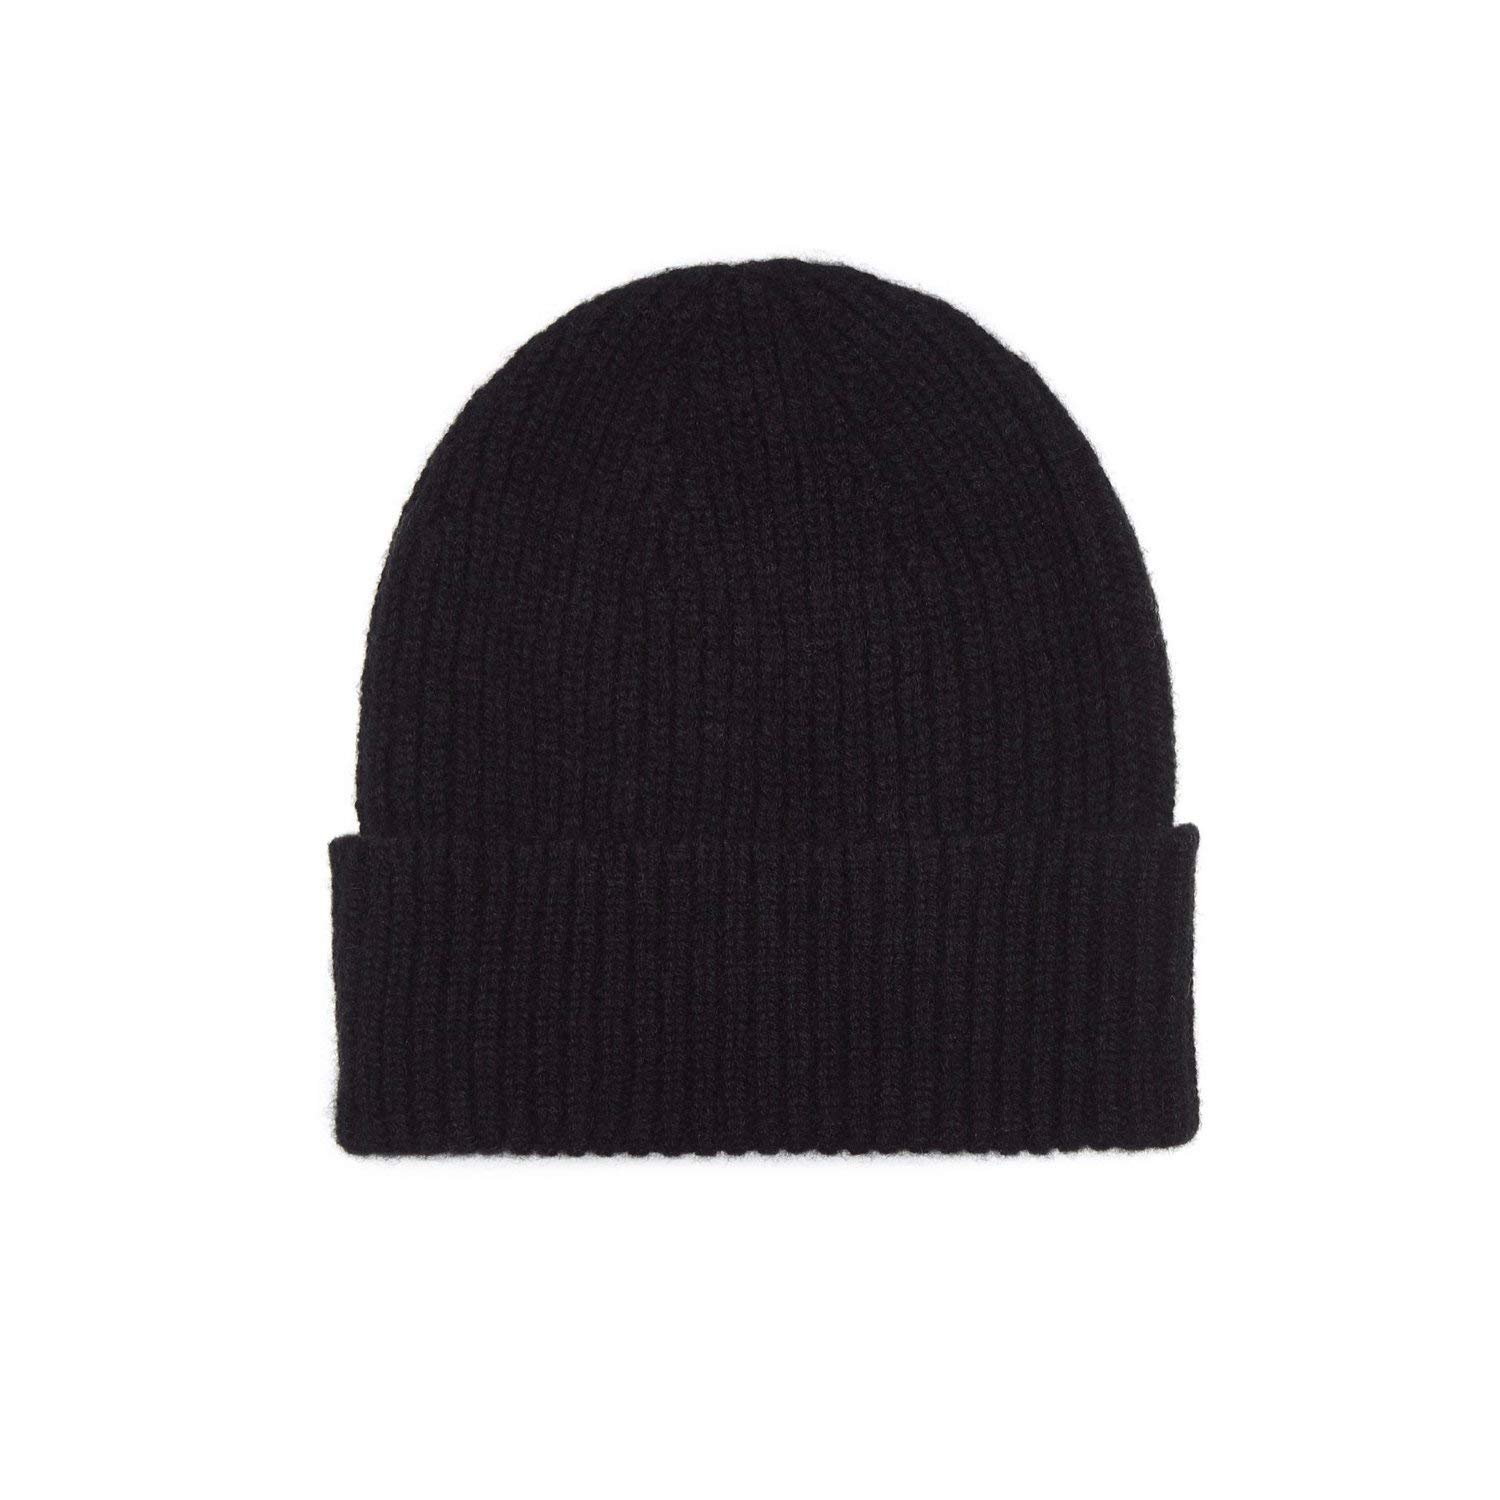 Get Quotations · 100% Cashmere Beanie Hat in 3ply 844a345e09b4